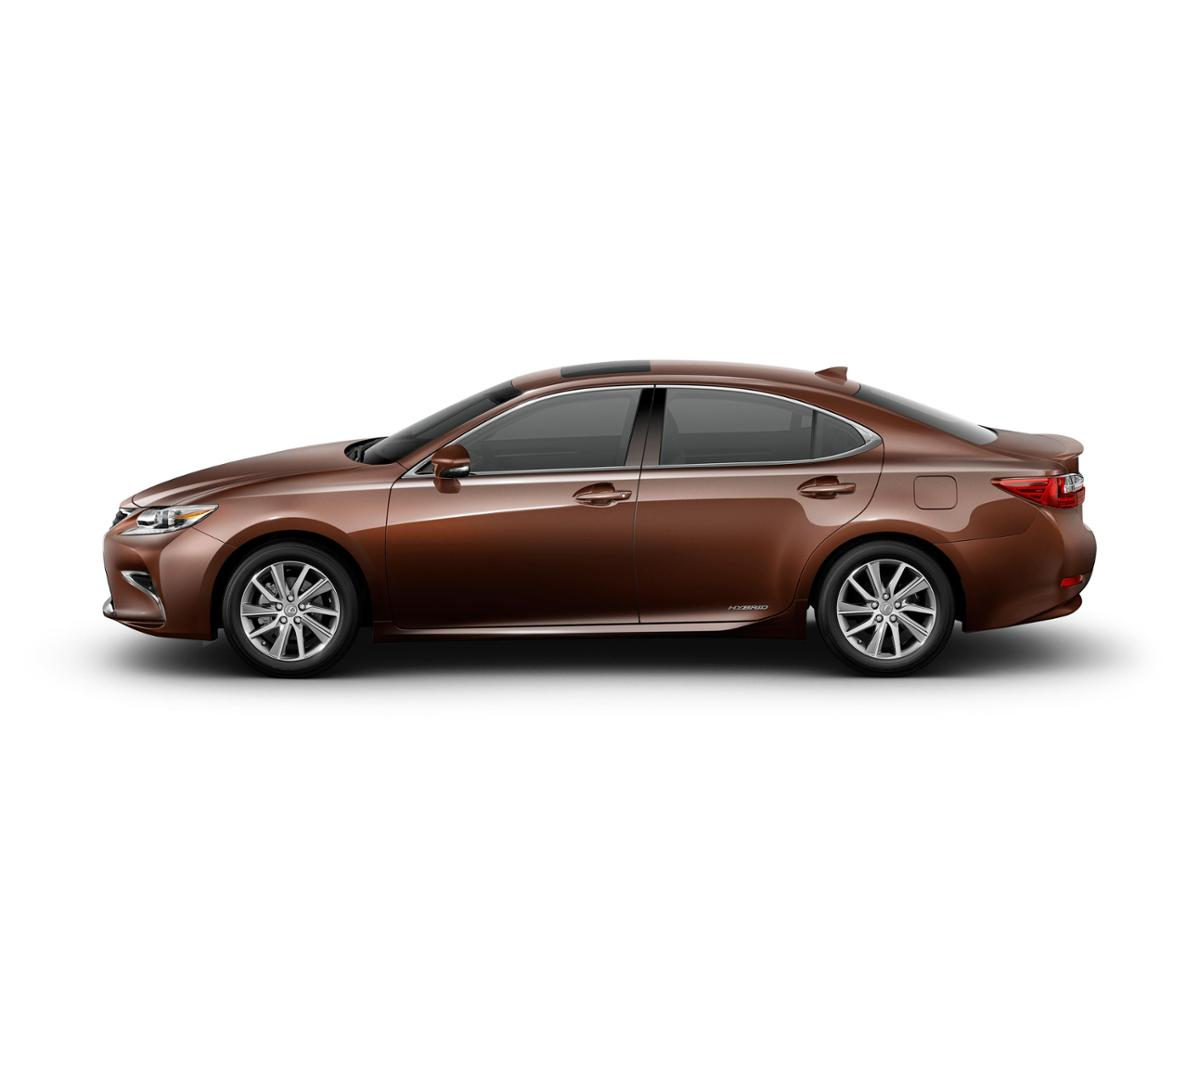 2018 autumn shimmer lexus es 300h for sale in colma jthbw1gg8j2171437 lexus of serramonte. Black Bedroom Furniture Sets. Home Design Ideas